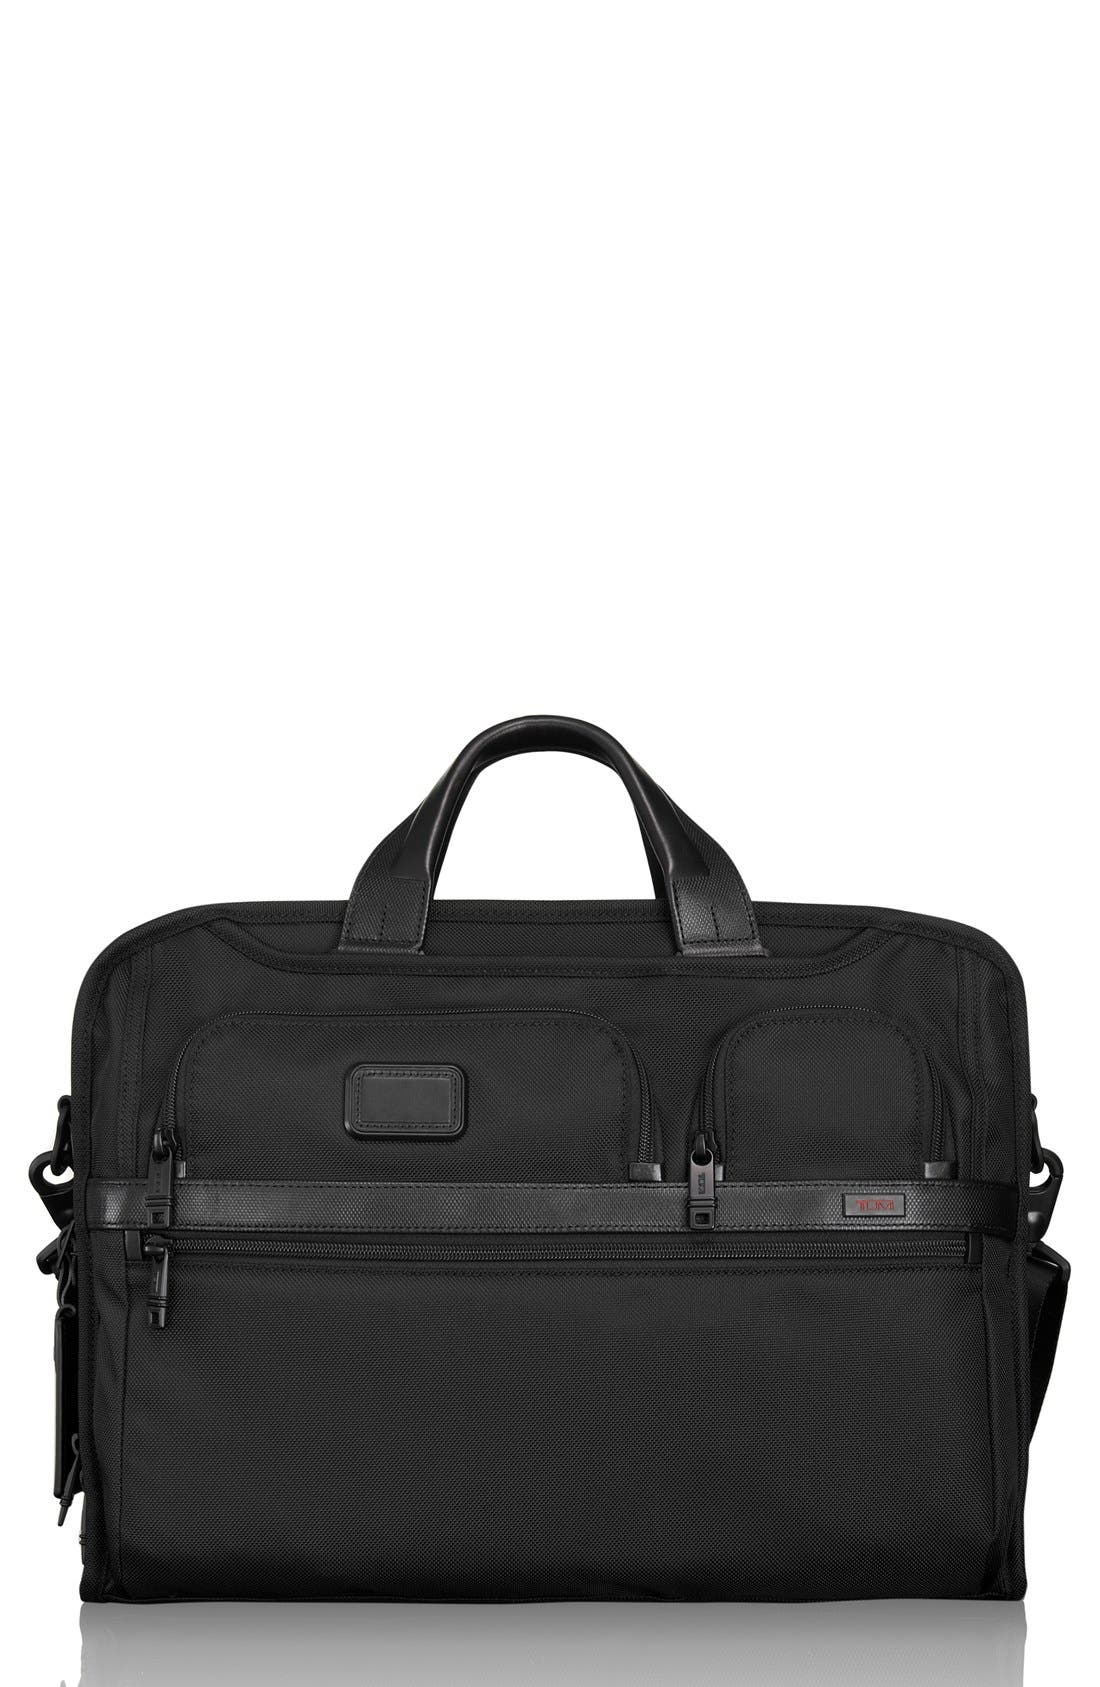 Alternate Image 1 Selected - Tumi 'Alpha 2' Laptop Briefcase with Tumi ID Lock Pocket